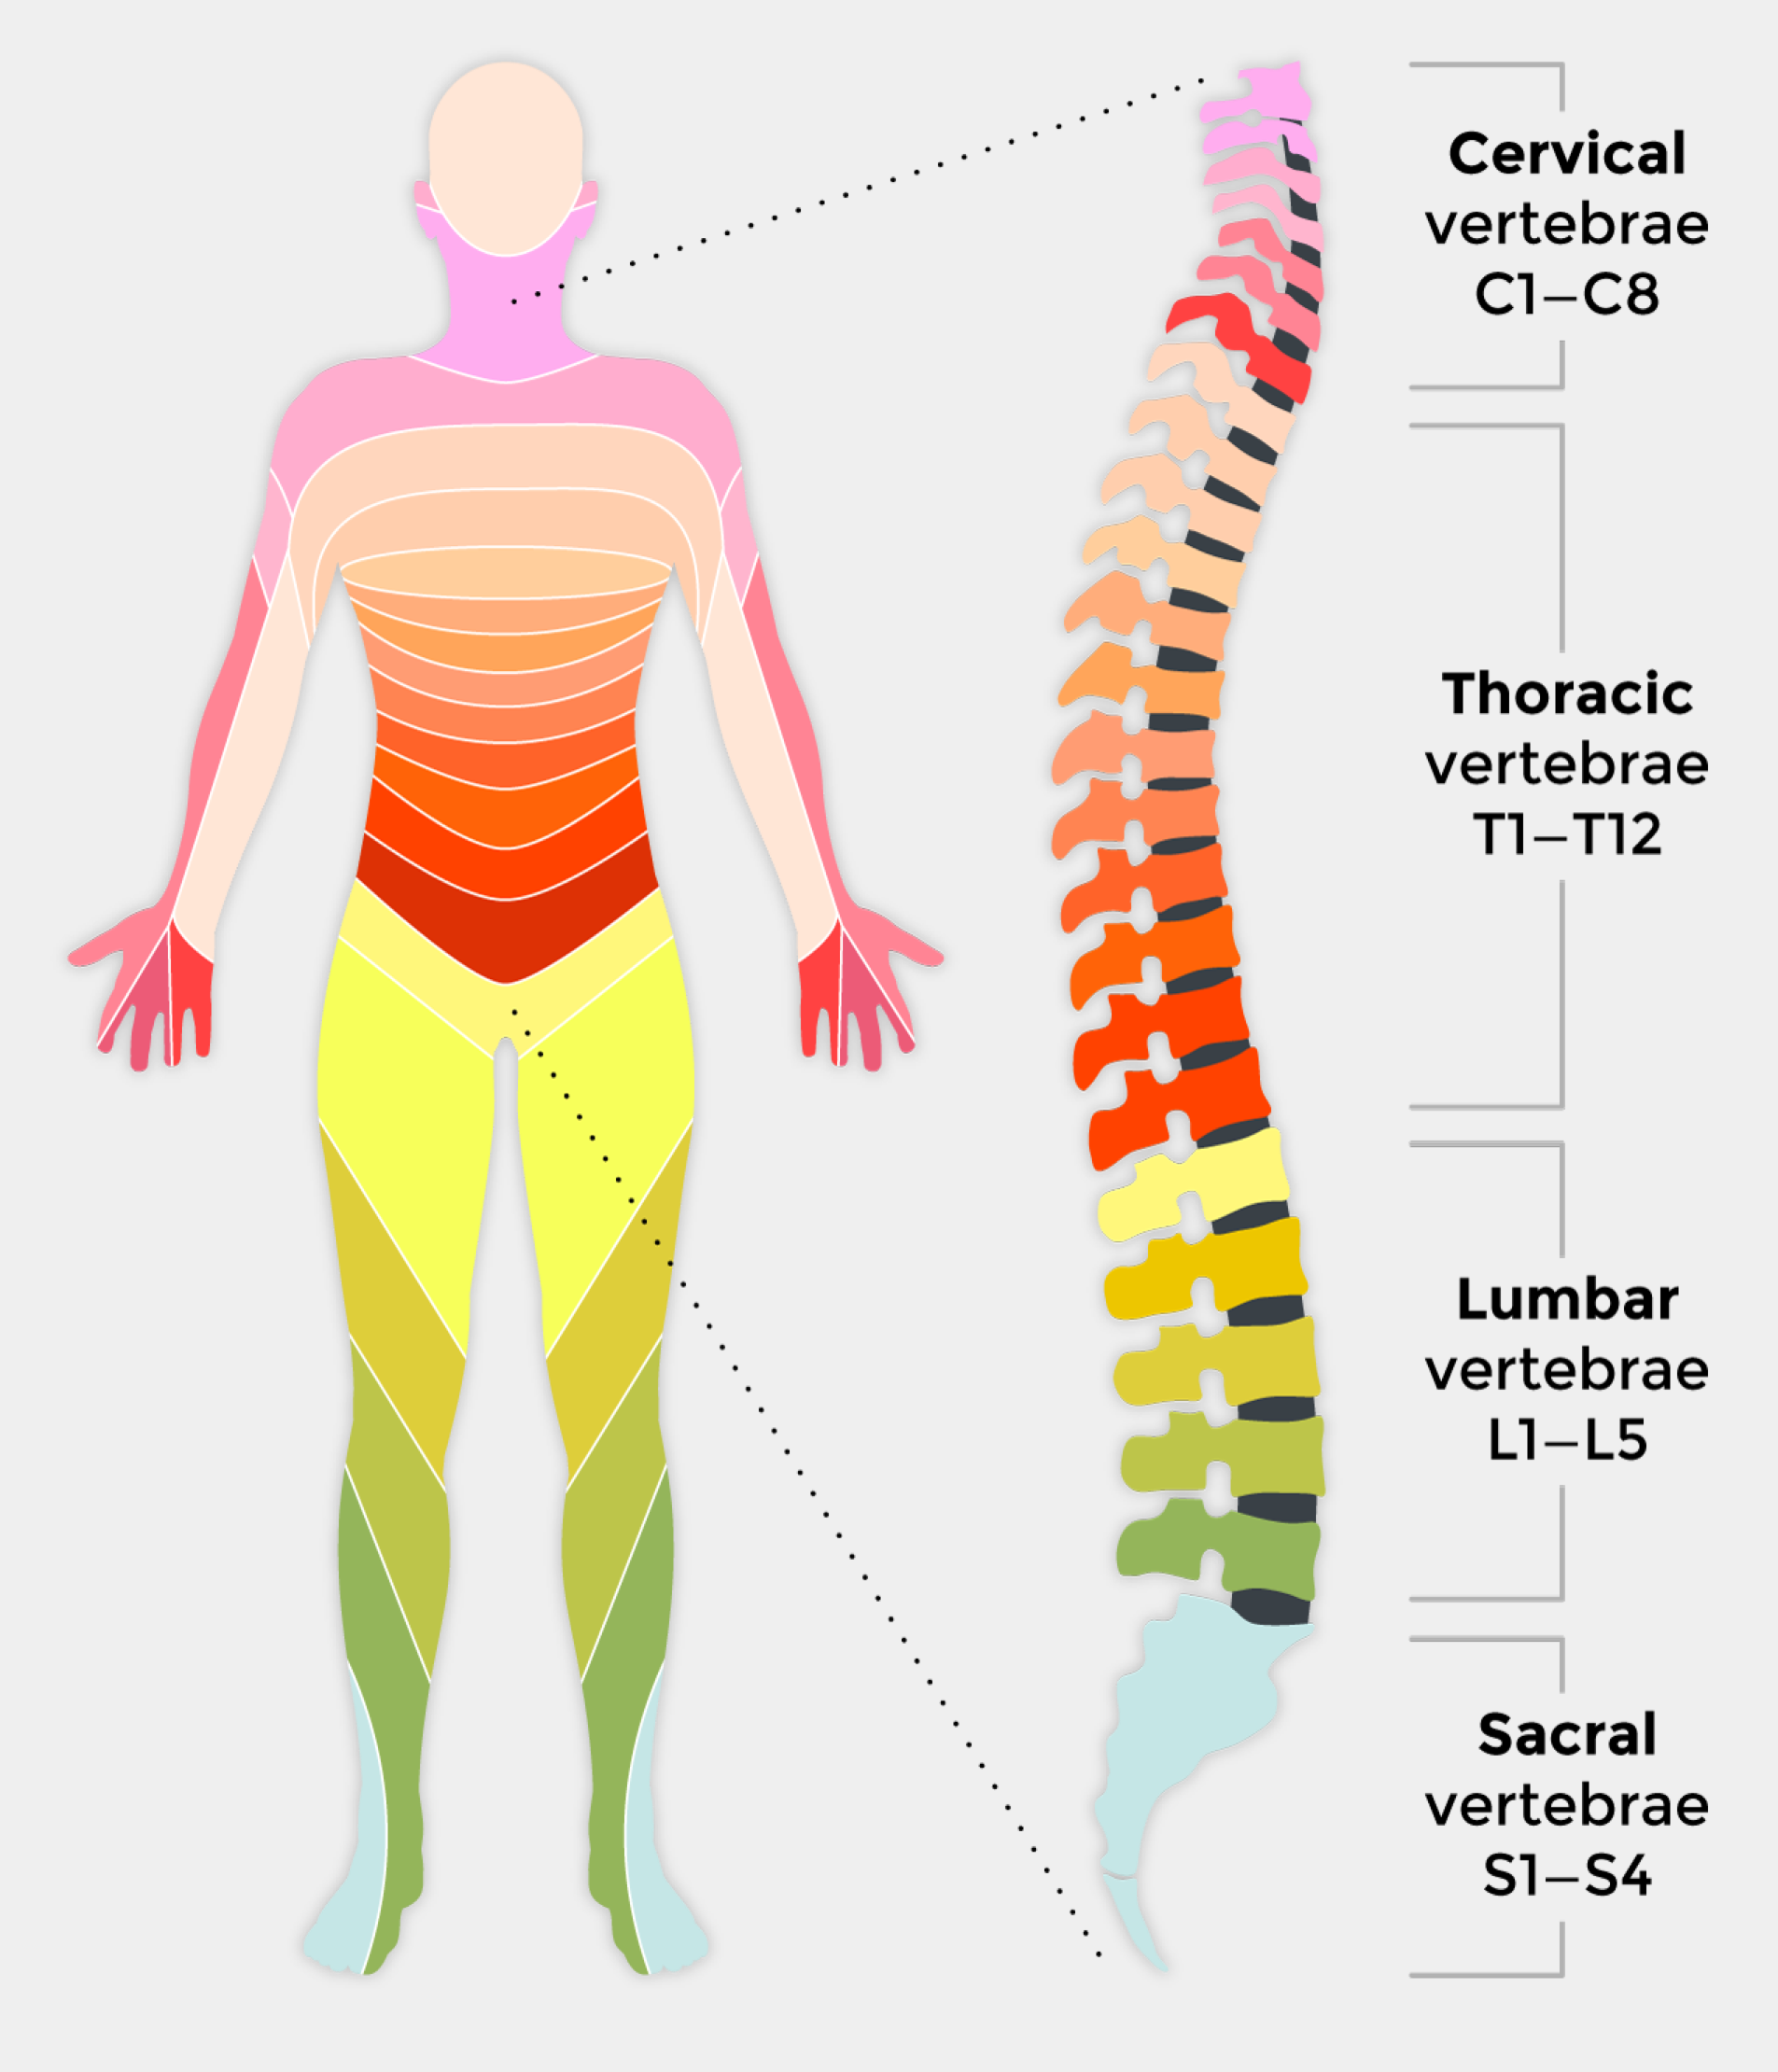 spinal cord injury The usc spine center is a hospital-based spine center that is dedicated to the management of all types of spinal cord injuries.